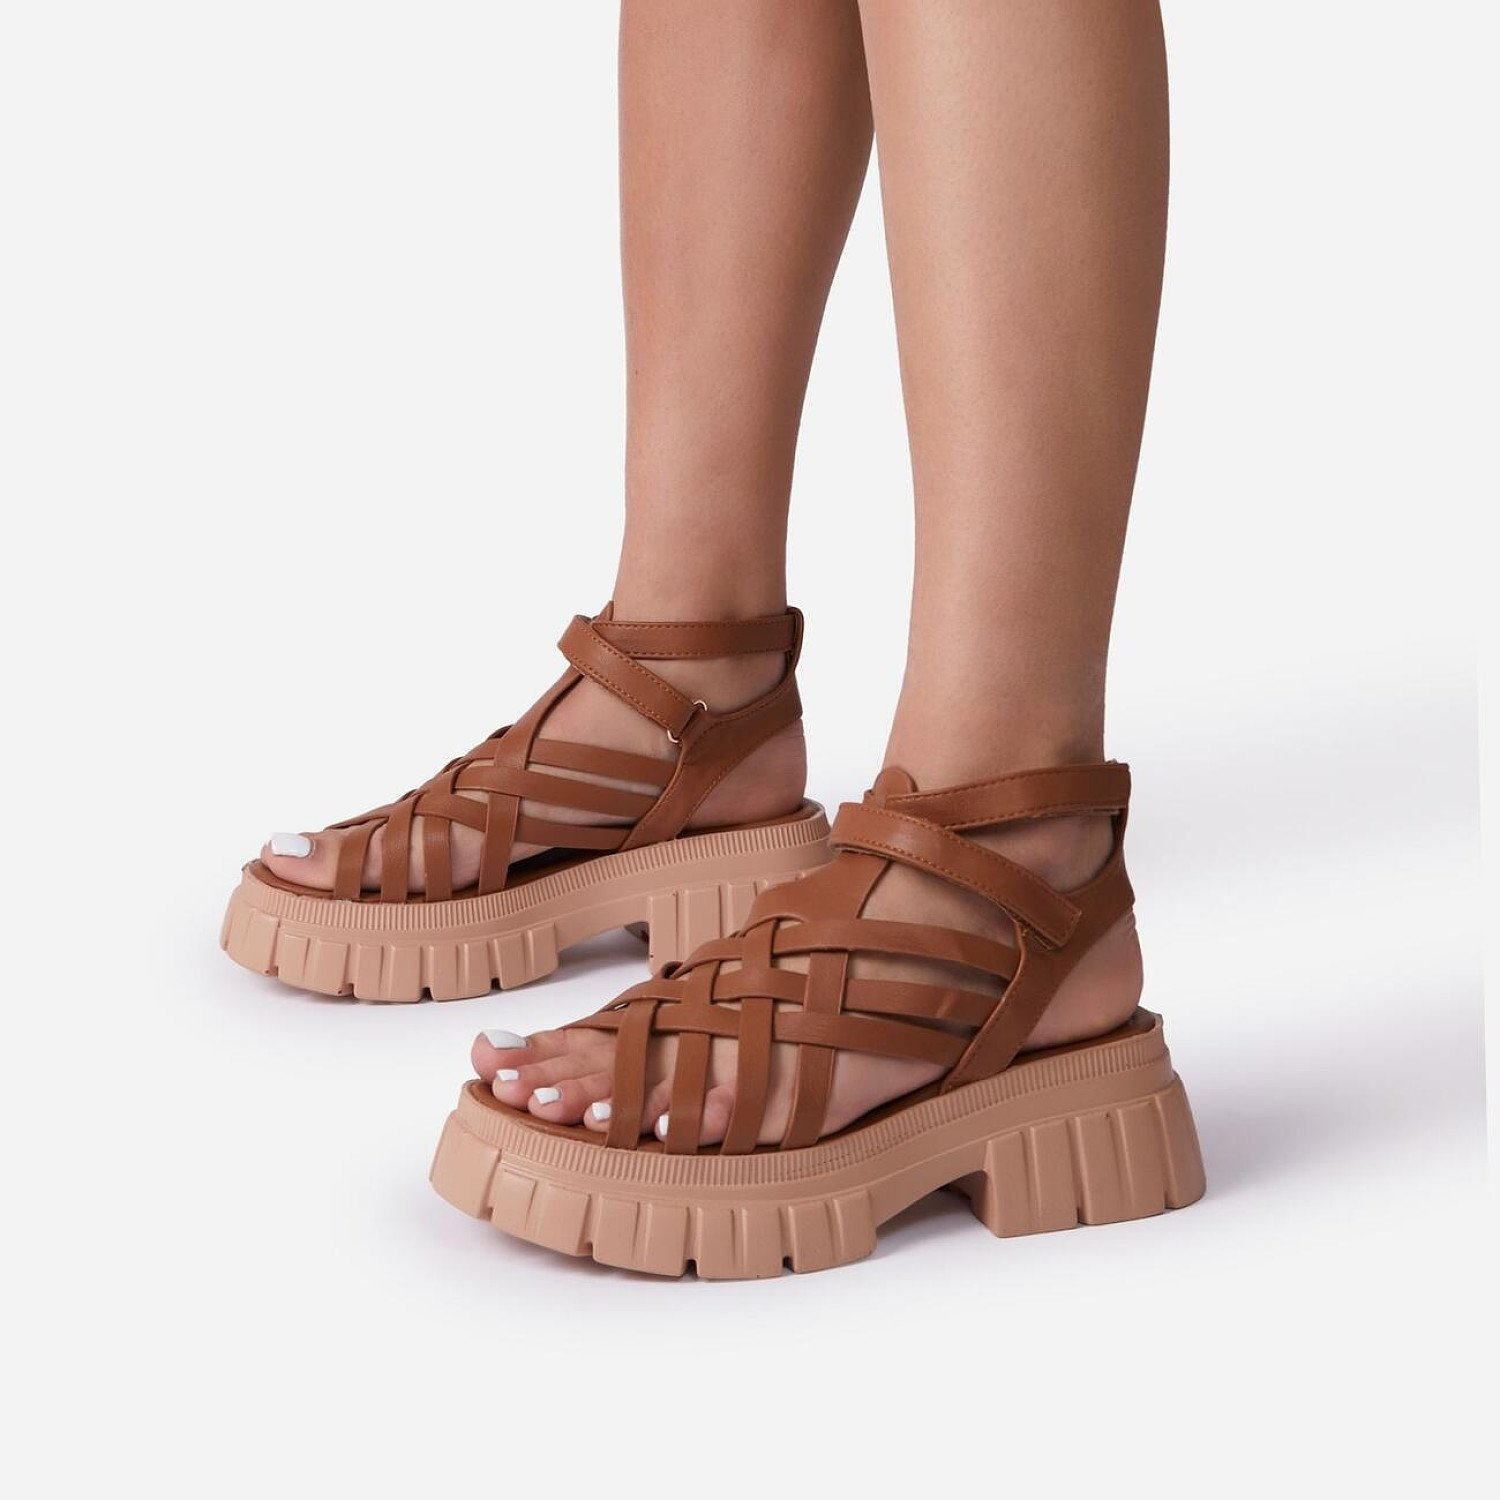 SAVE - Daydreamer Chunky Sole Caged Gladiator Sandal In Tan Brown Faux Leather